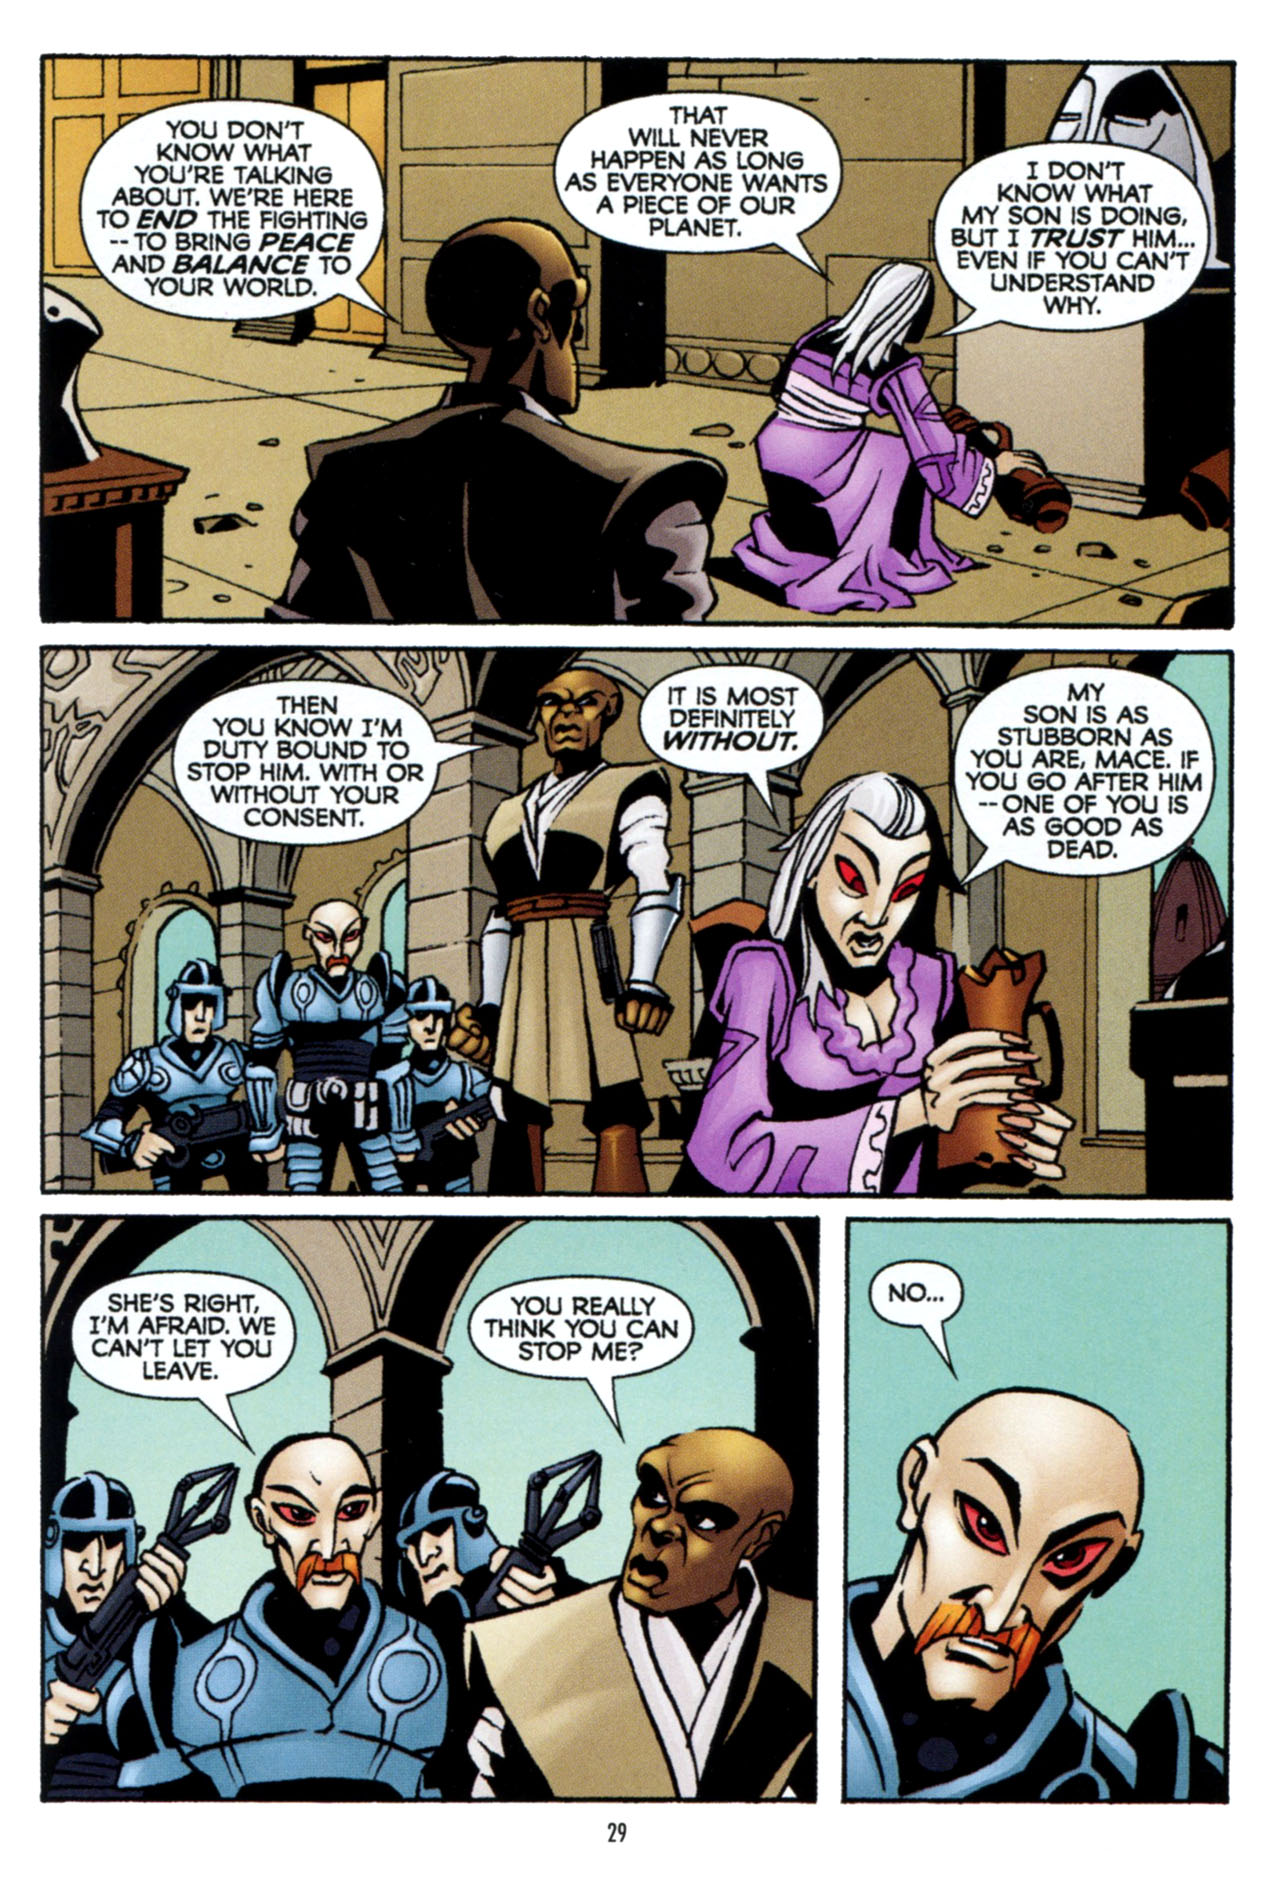 Read online Star Wars: The Clone Wars - The Colossus of Destiny comic -  Issue # Full - 30